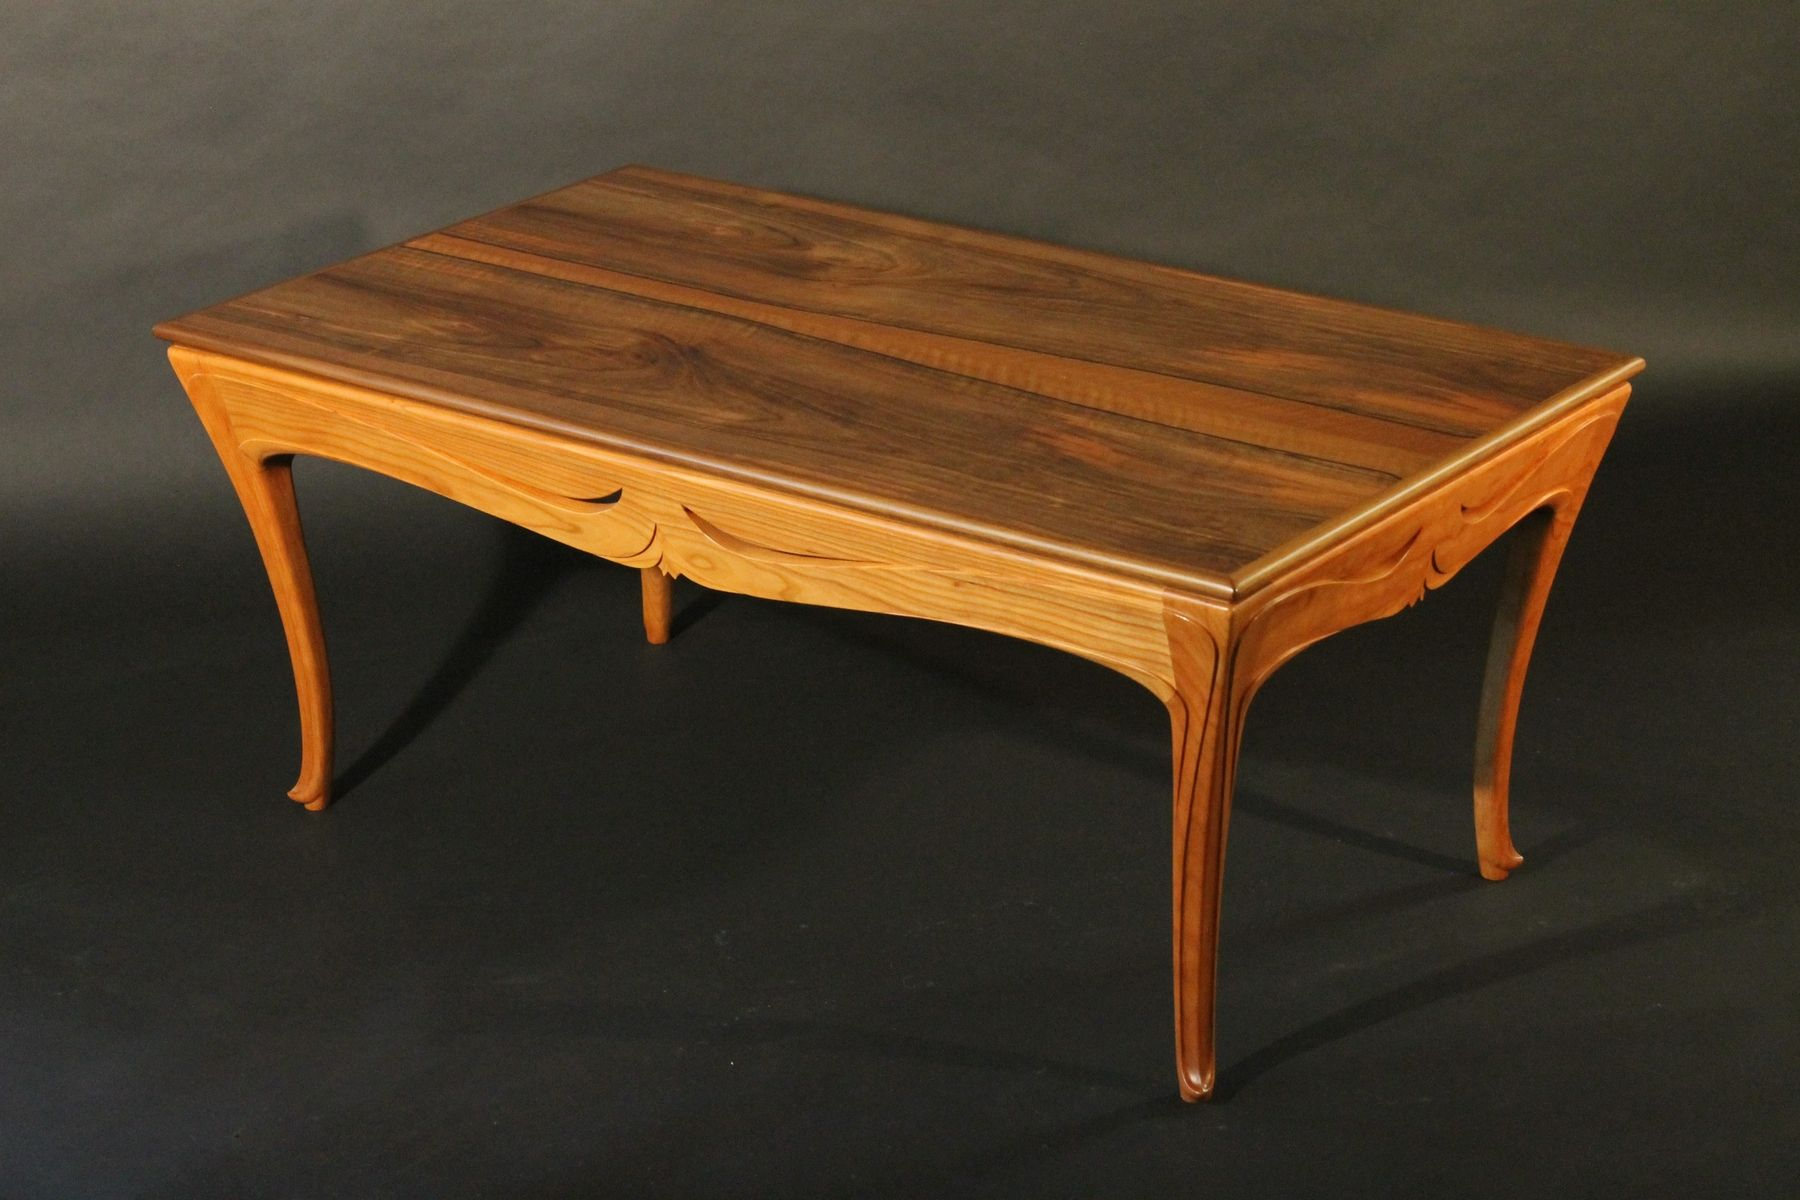 Custom Art Nouveau Coffee Table By J Rivers Furniture Millwork